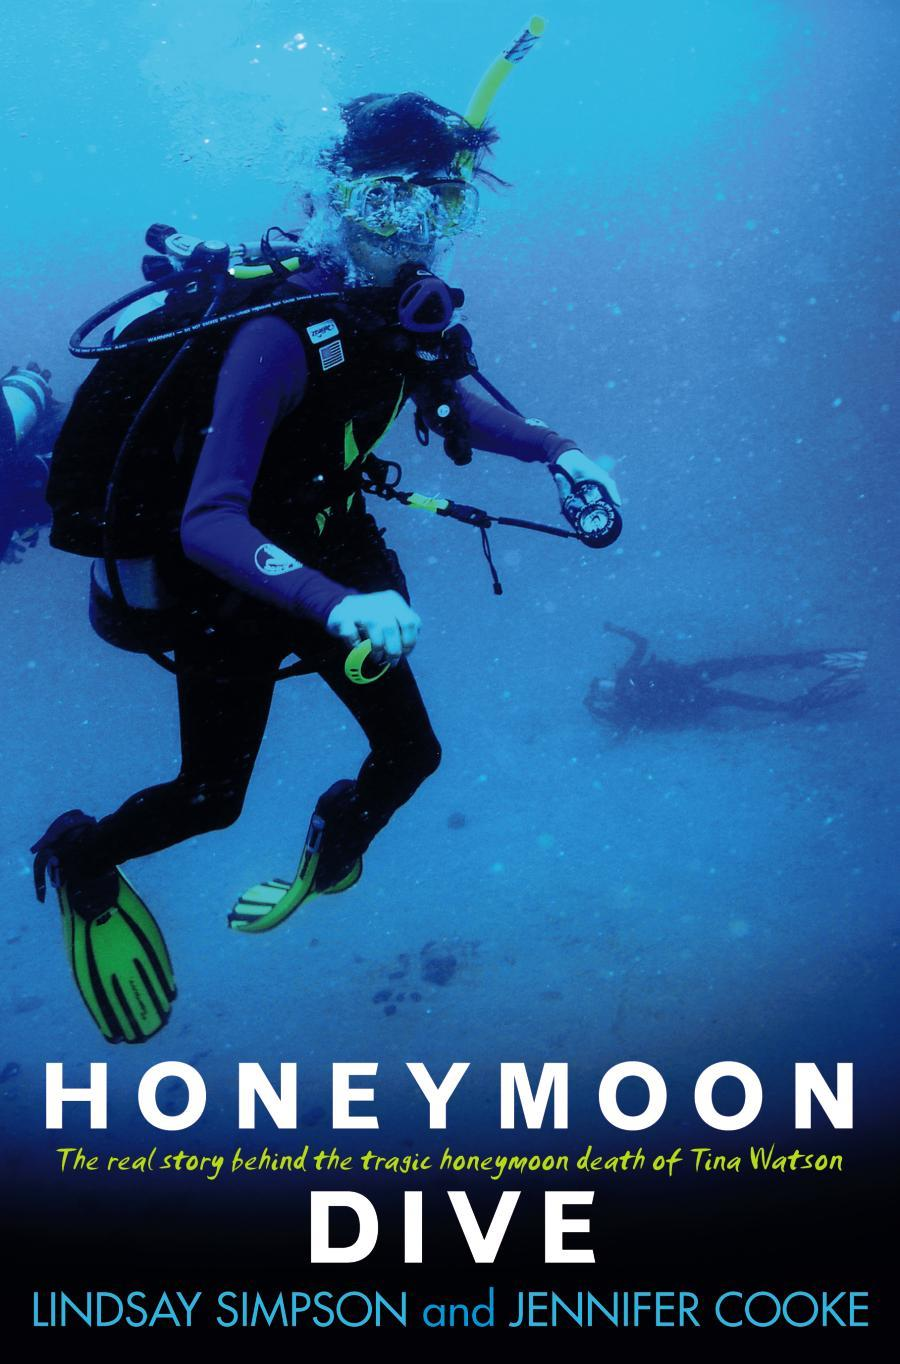 Honeymoon dive / Lindsay Simpson and Jennifer Cooke